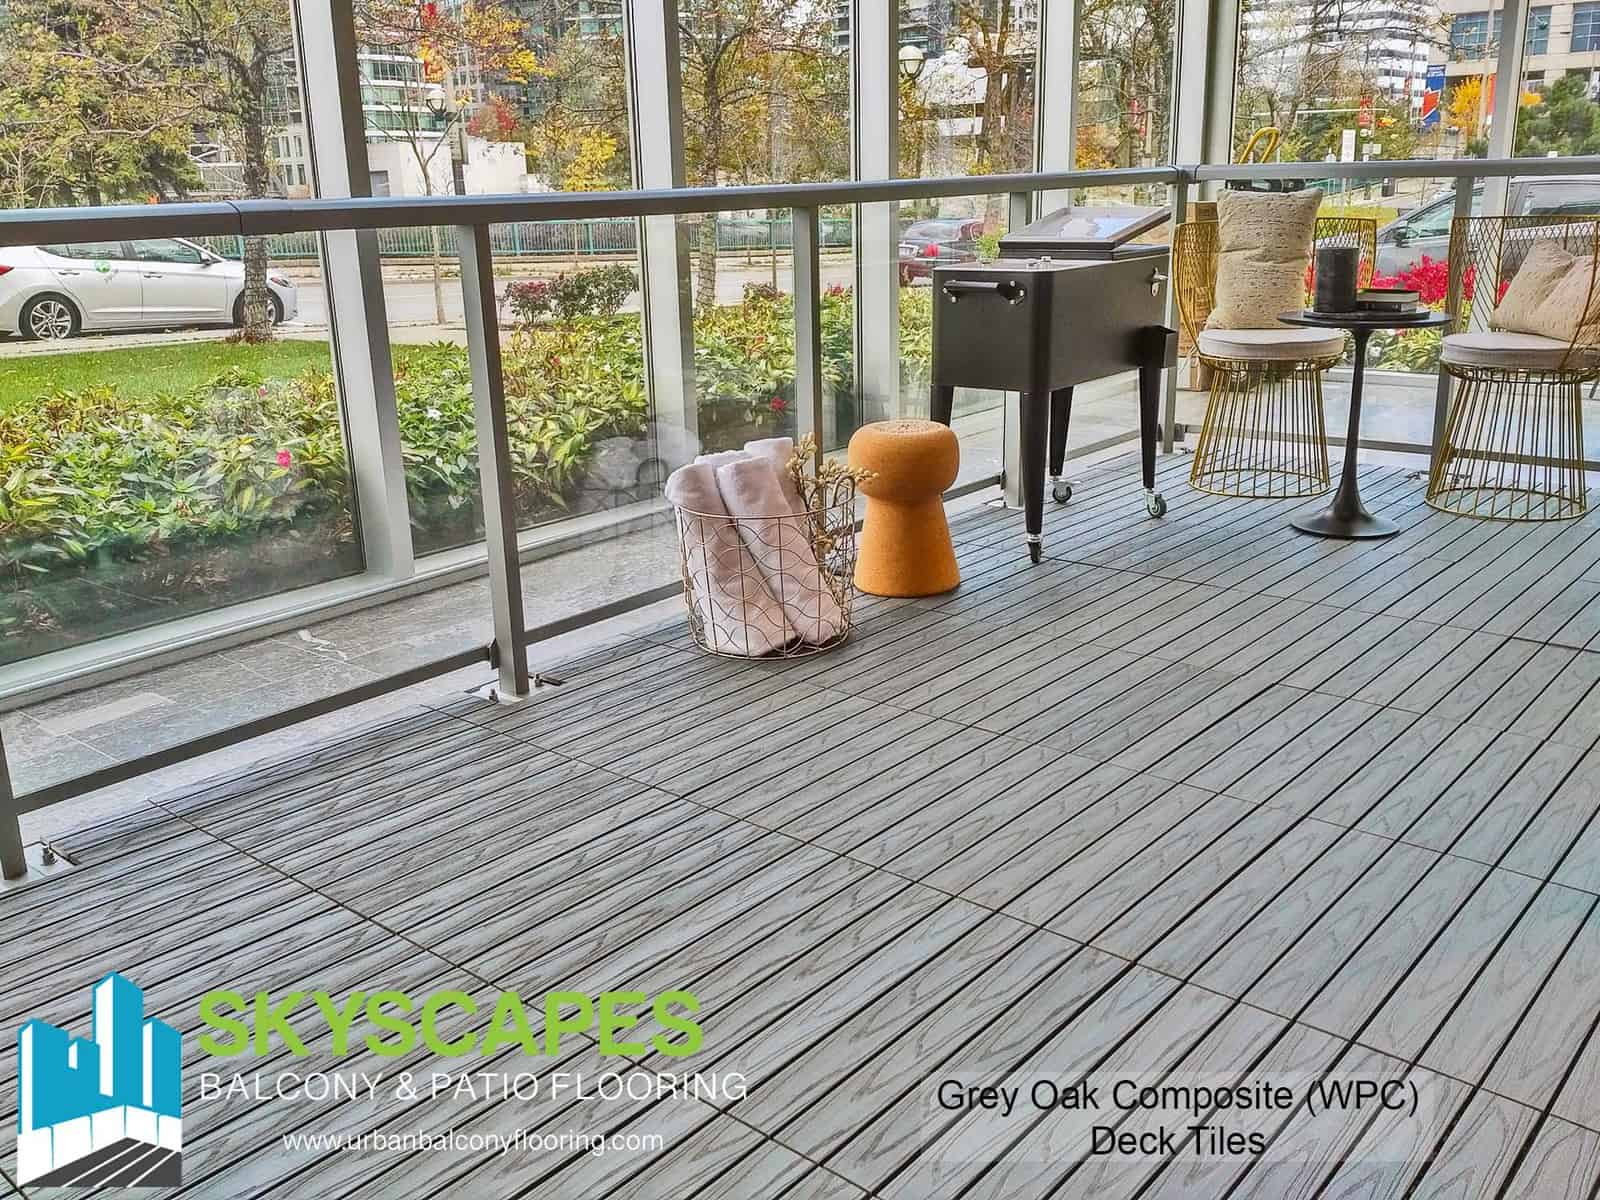 Grey oak, 4-slat, embossed WPC Tile seen on angle on indoor terrace. Each tile measures 2 by 1 feet. Skyscapes green and blue logo at bottom-left of image.